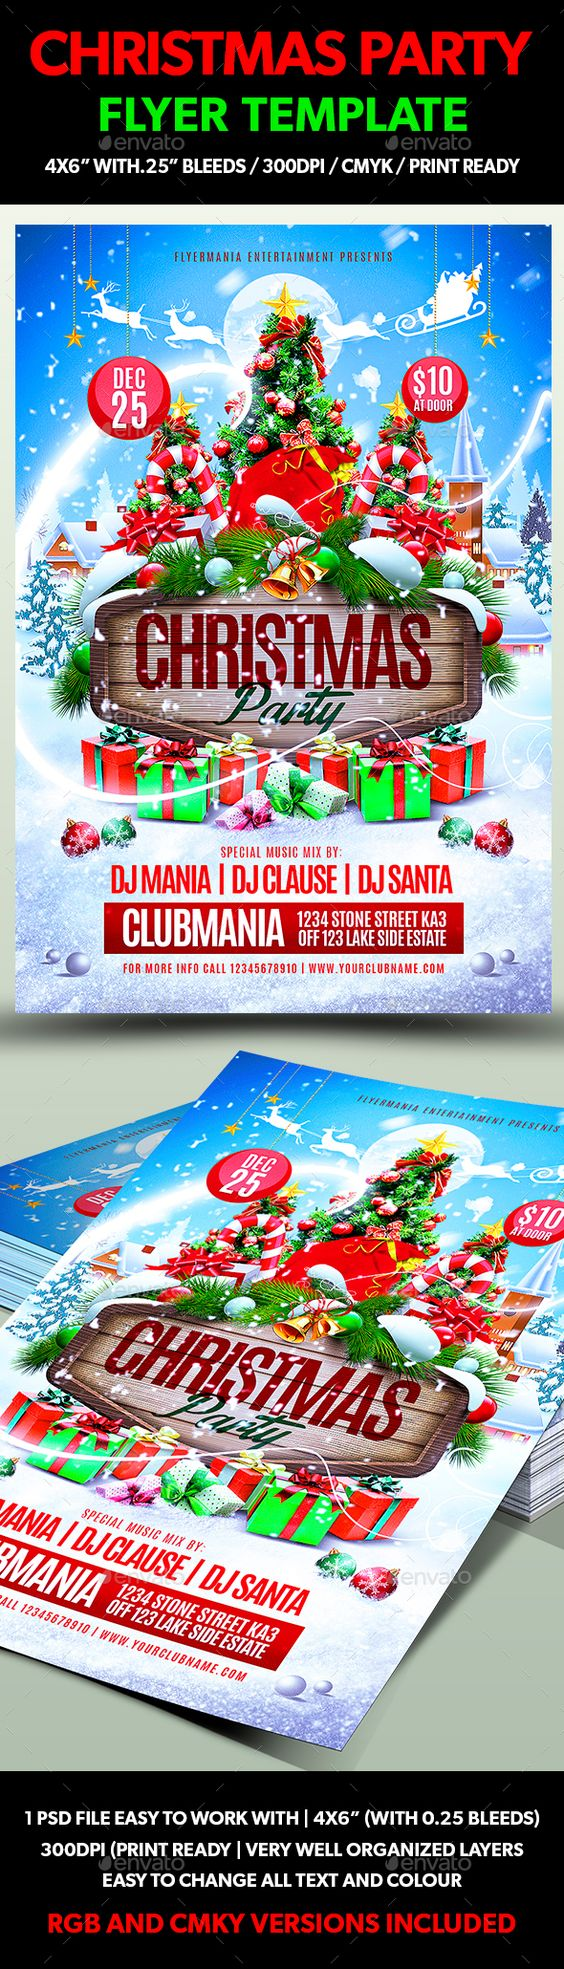 christmas party flyer template christmas parties flyer template christmas party flyer template psd design xmas graphicriver